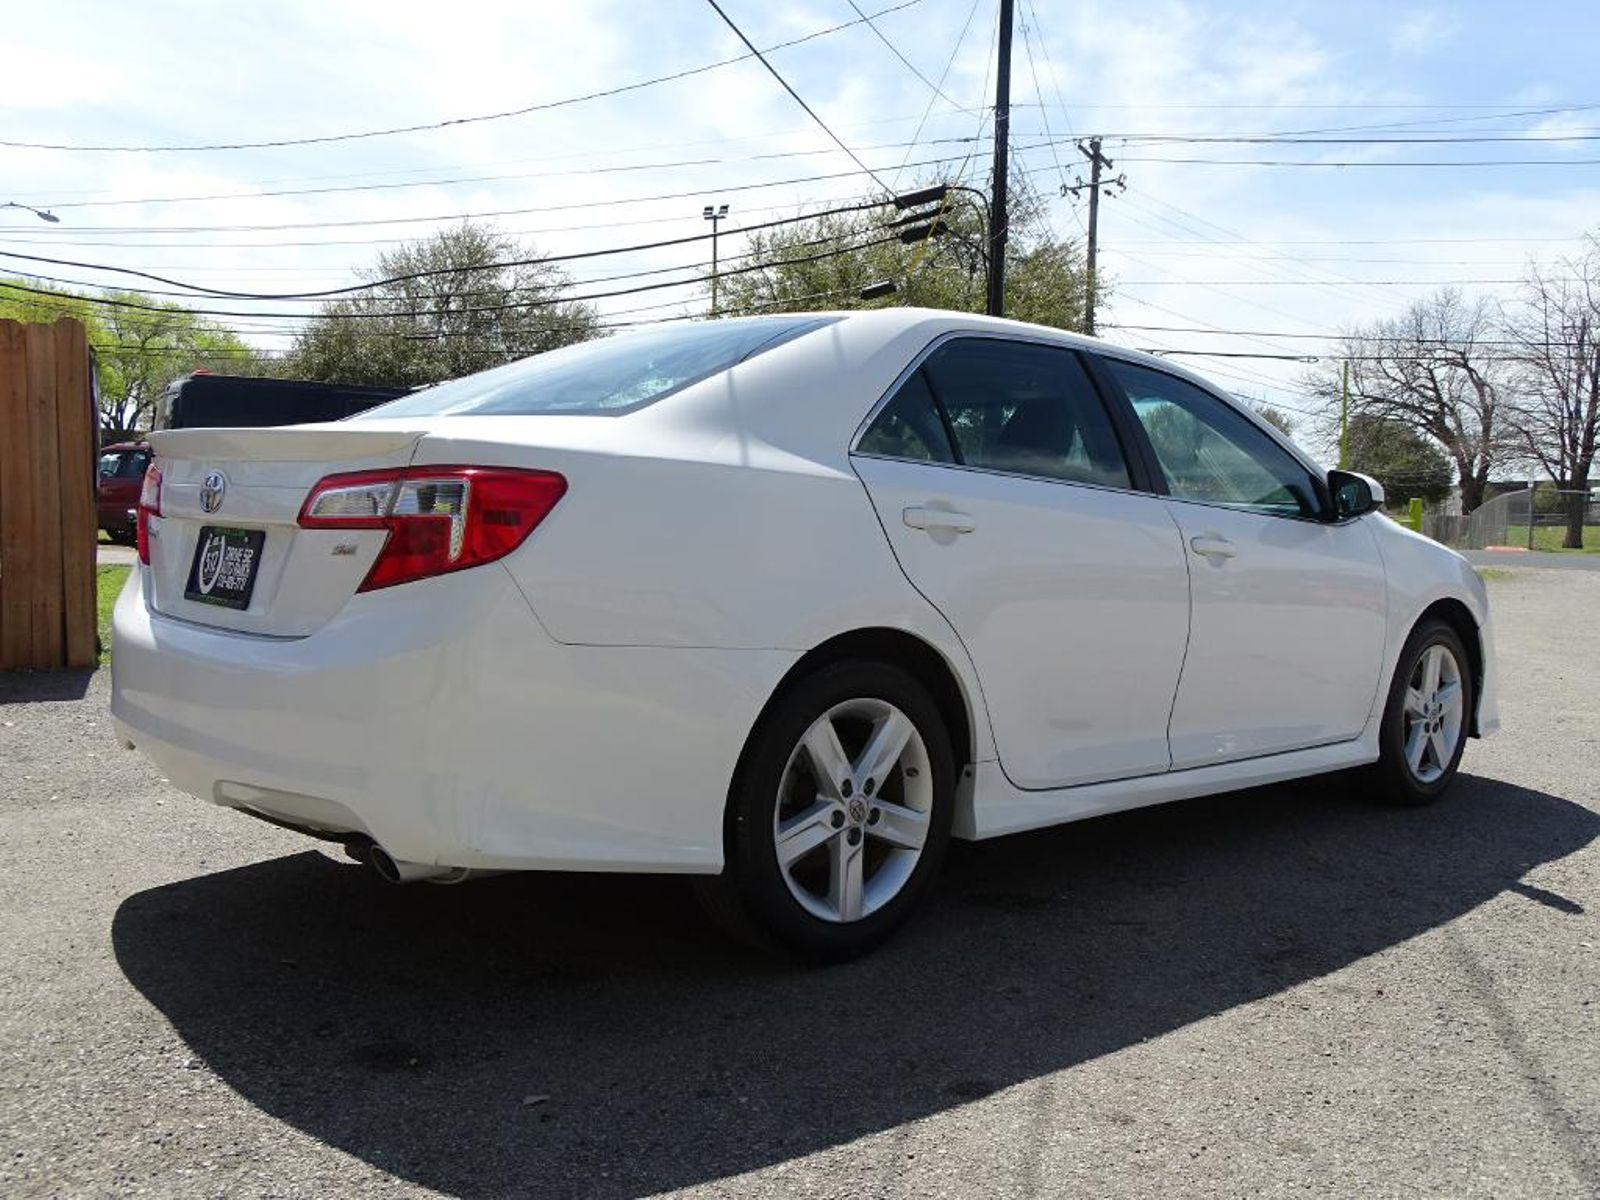 in se sedan toyota cars sale carsforsale palm used for stock florida fine camry west fl